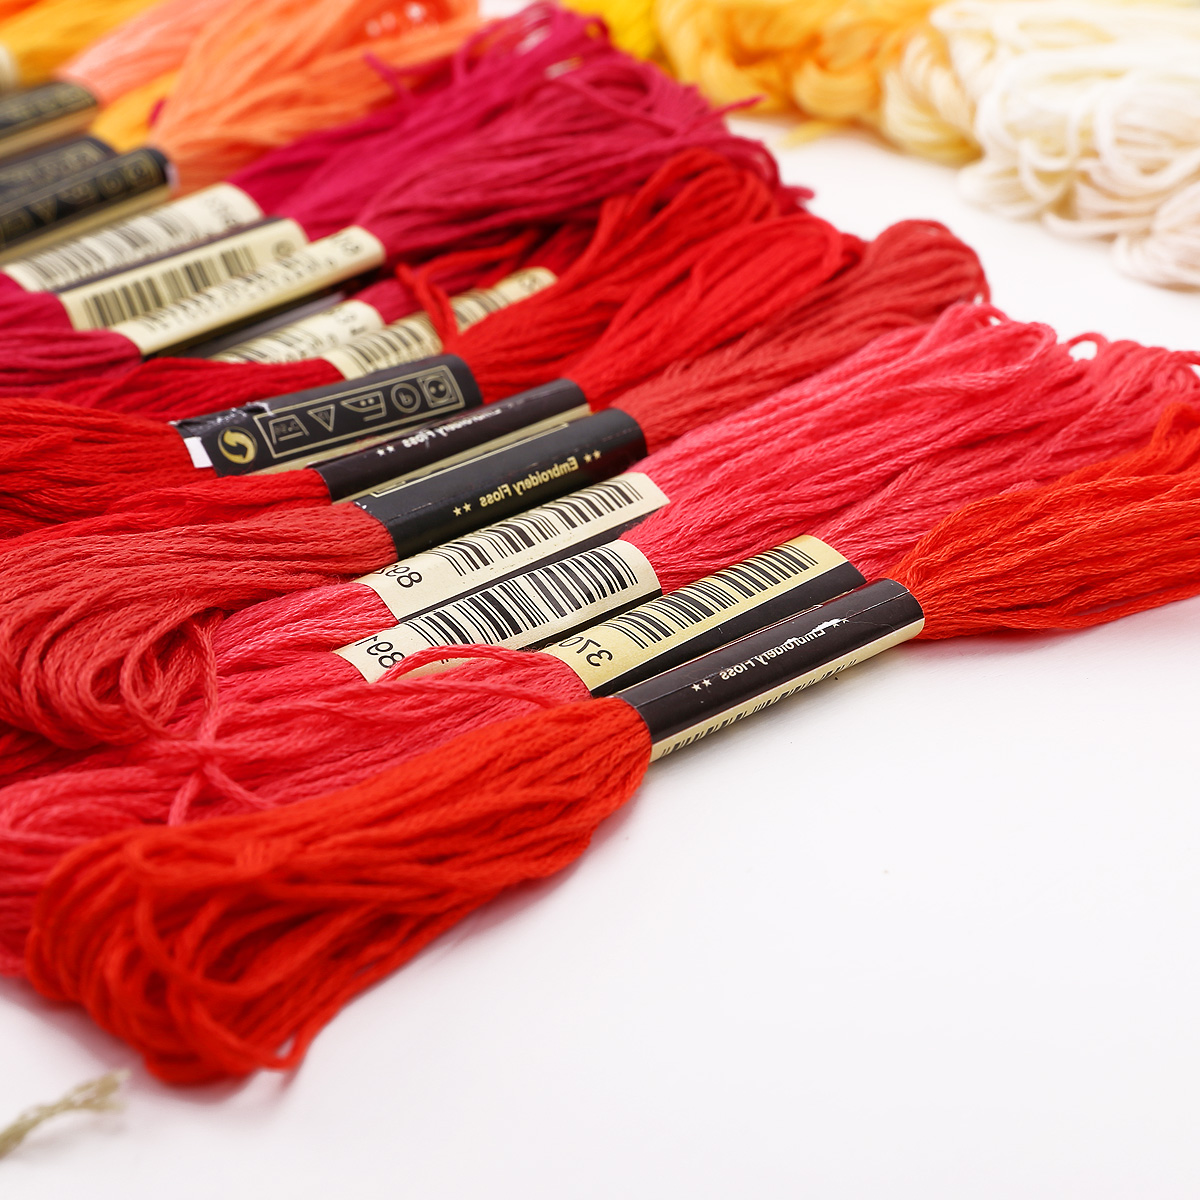 50-300-Color-Cross-Stitch-Thread-Embroidery-Floss-Sewing-Skeins-100-Cotton-Line thumbnail 6